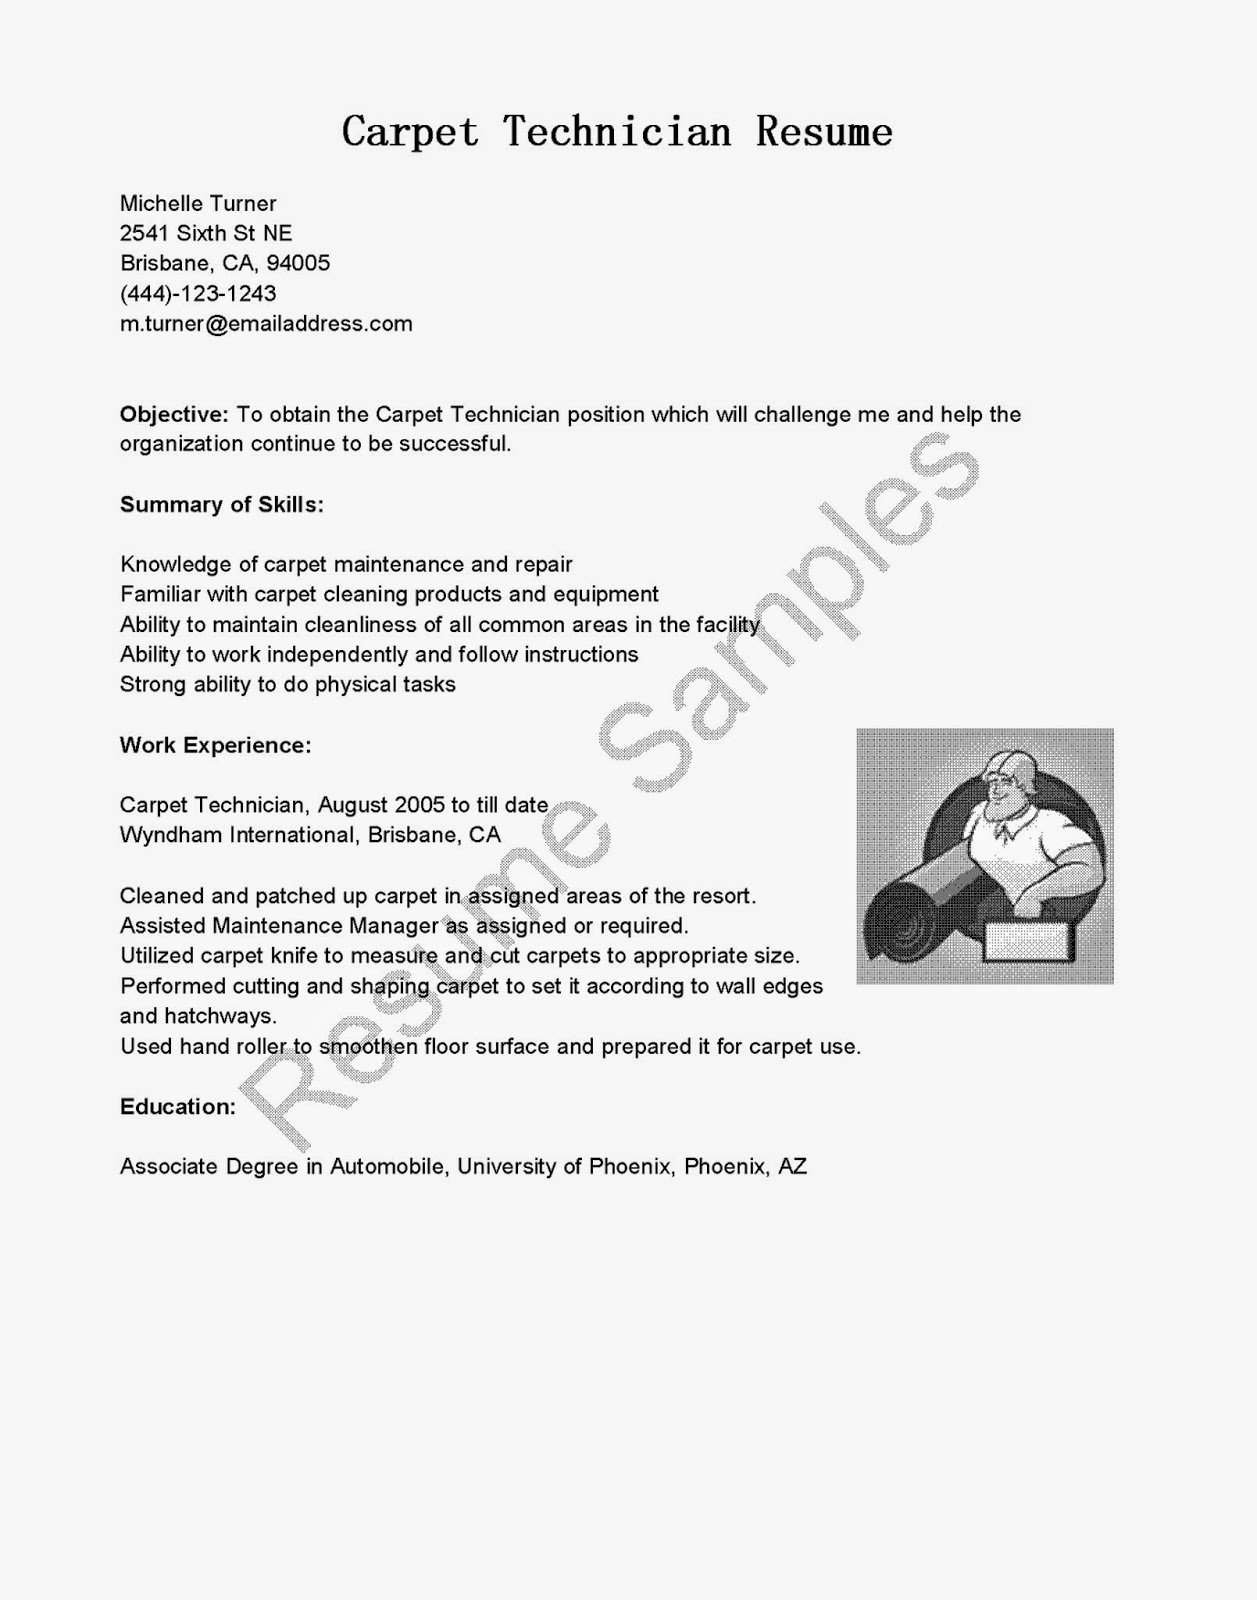 resume setup resume setup makemoney alex tk